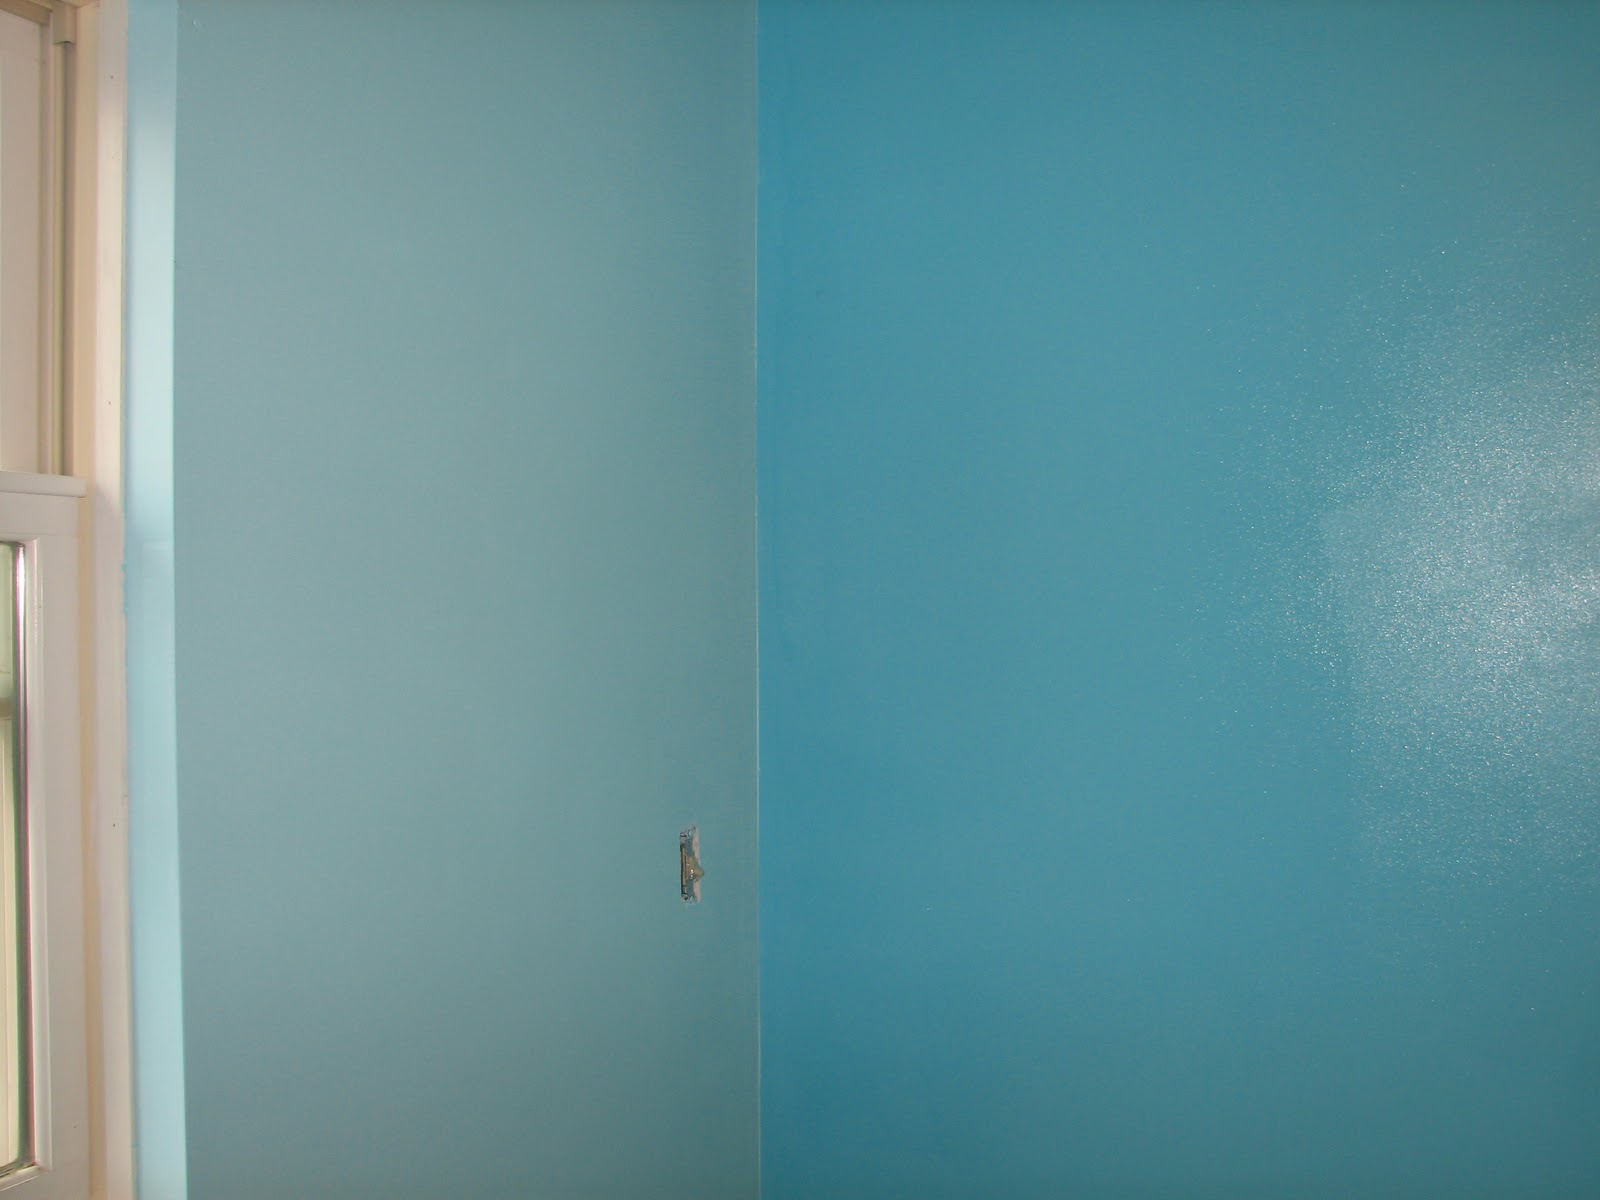 The fyg s new diy bedroom wall border the common room for Painting a room two colors opposite walls